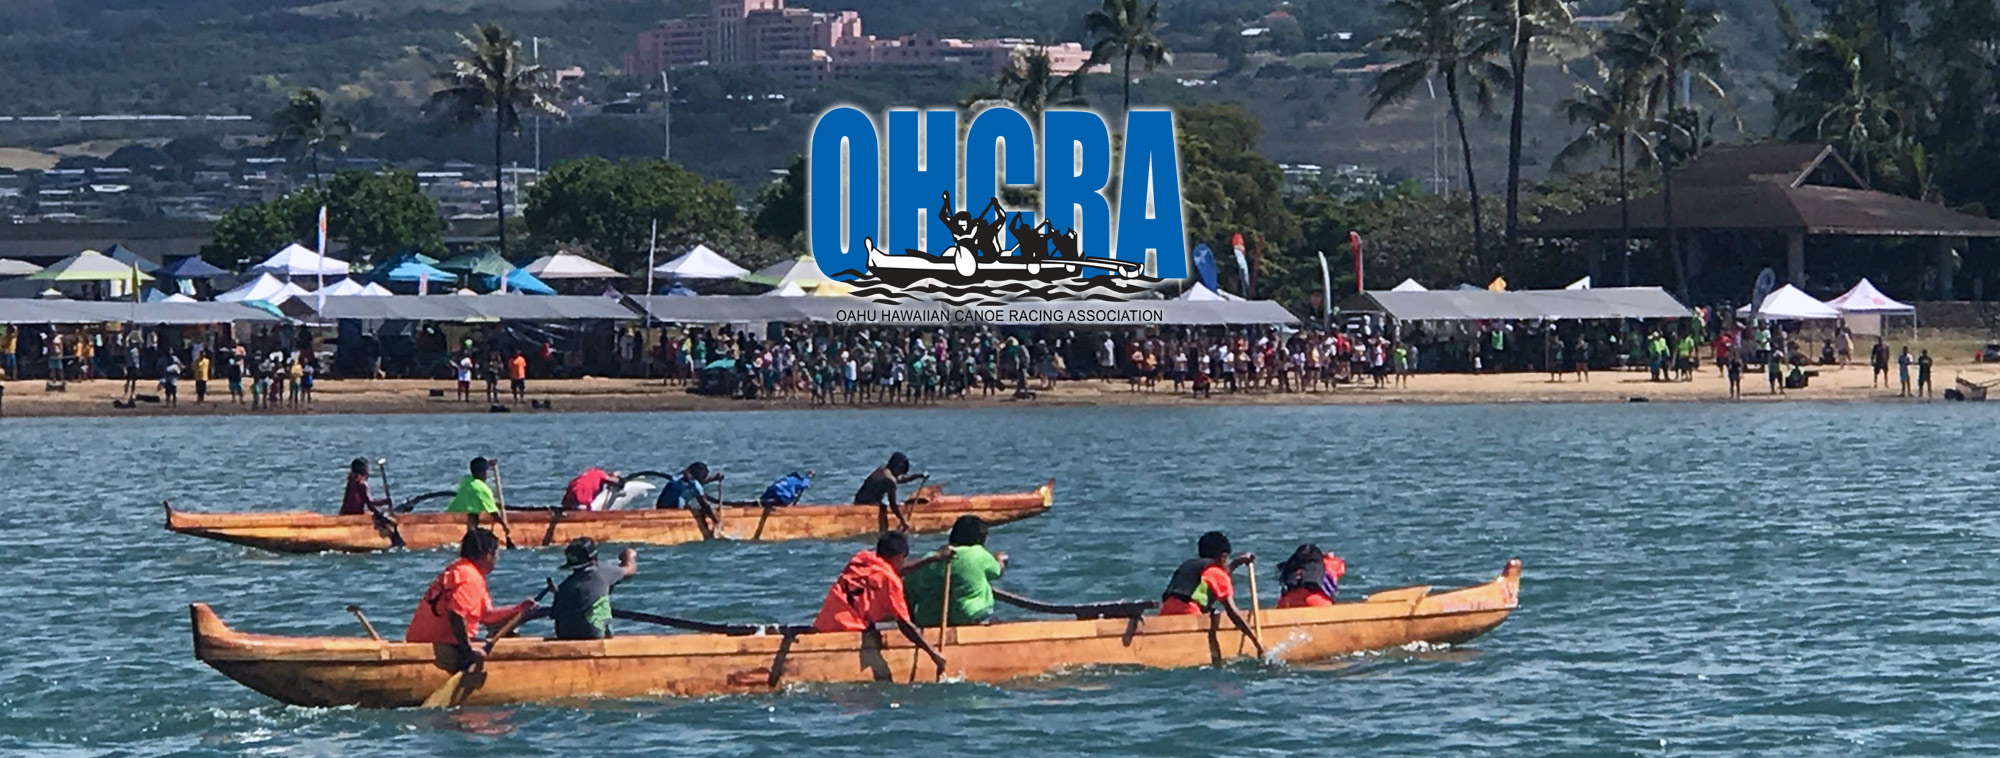 OHCRA News & Events